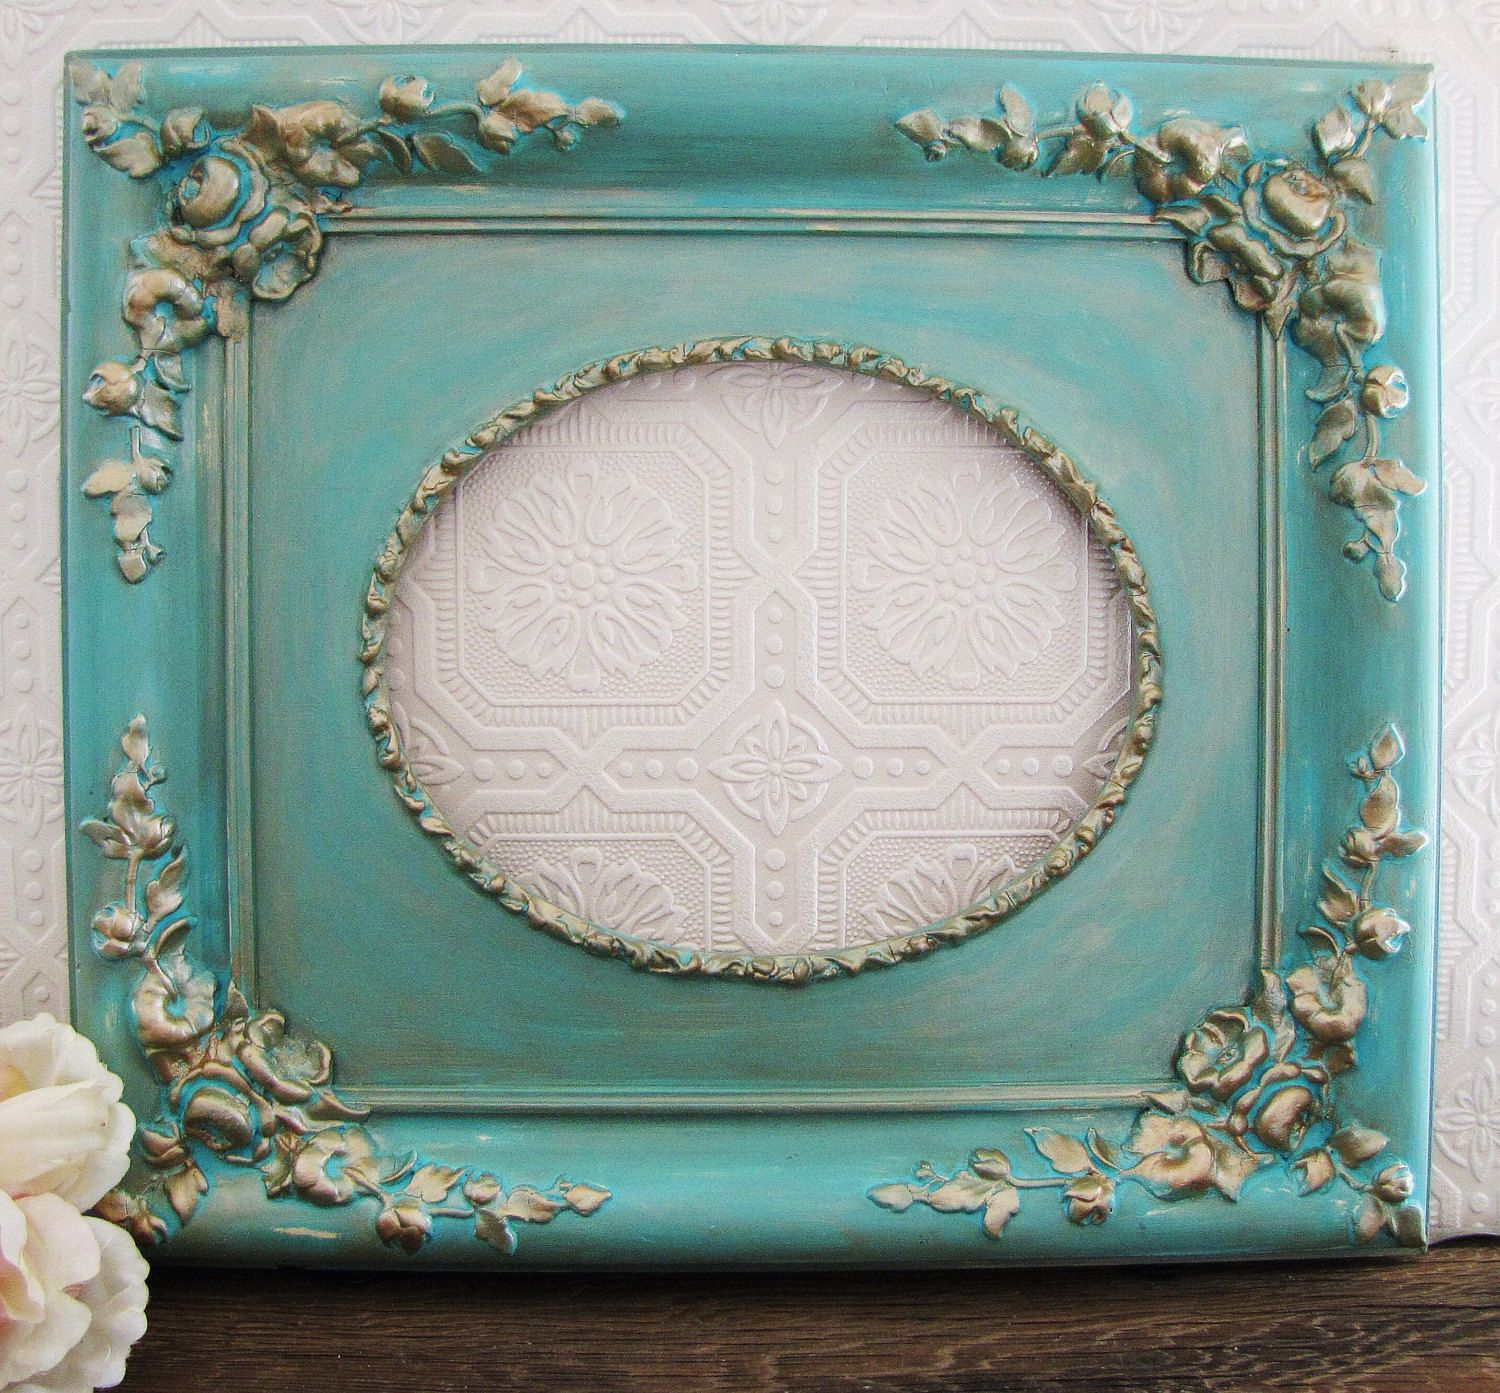 Tiffany blue picture frame antique shabby chic wall decor blue tiffany blue picture frame antique shabby chic wall decor jeuxipadfo Image collections